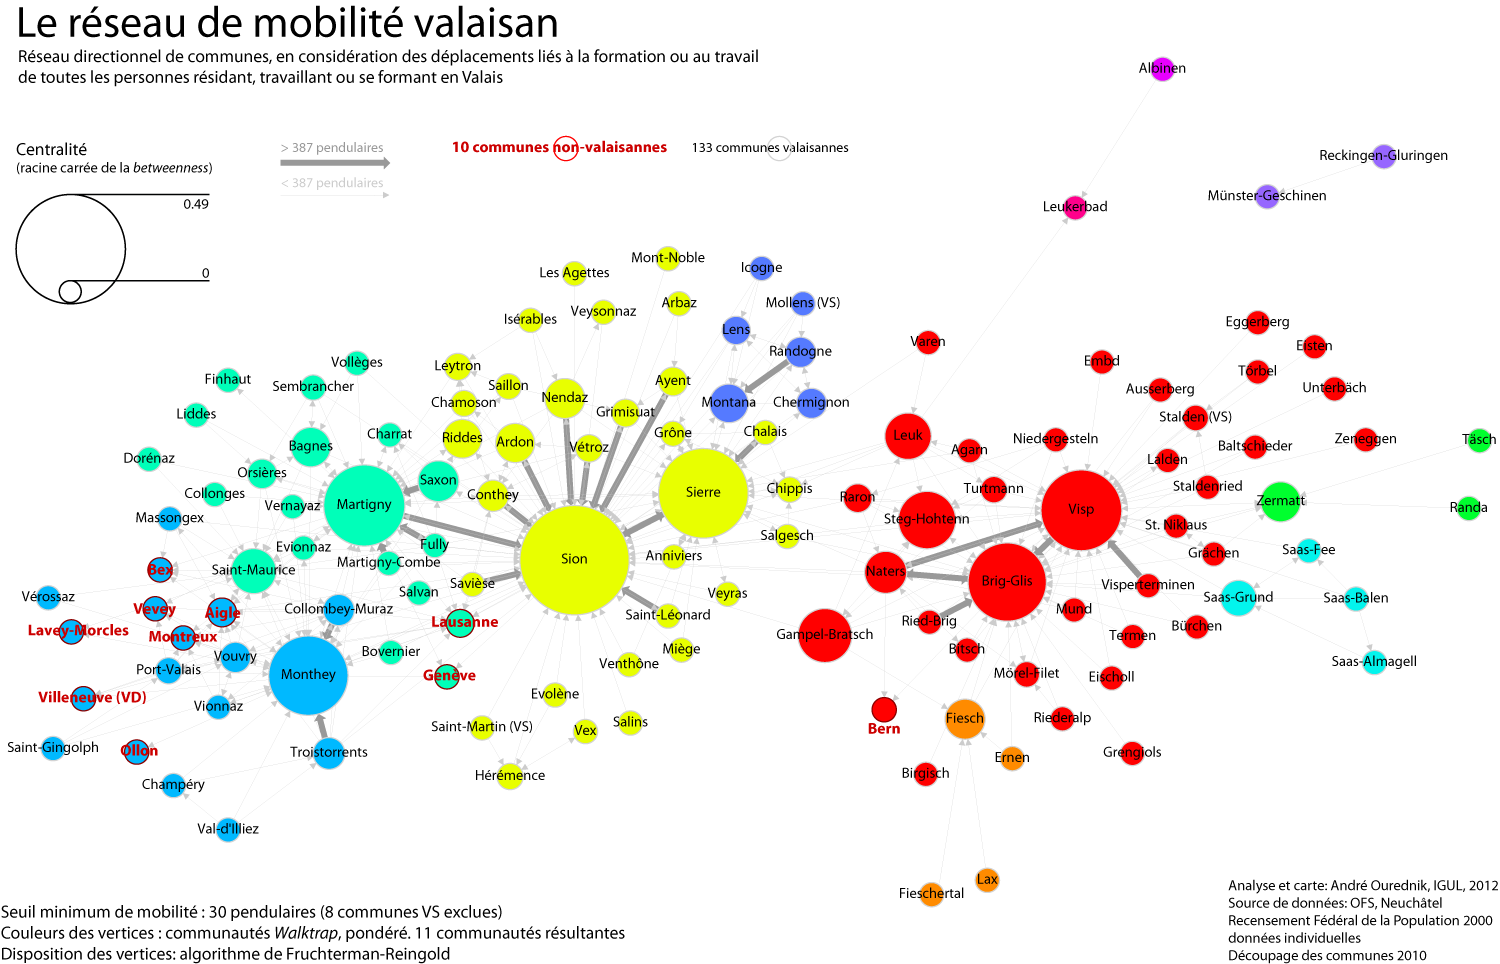 The Valaisan mobility network